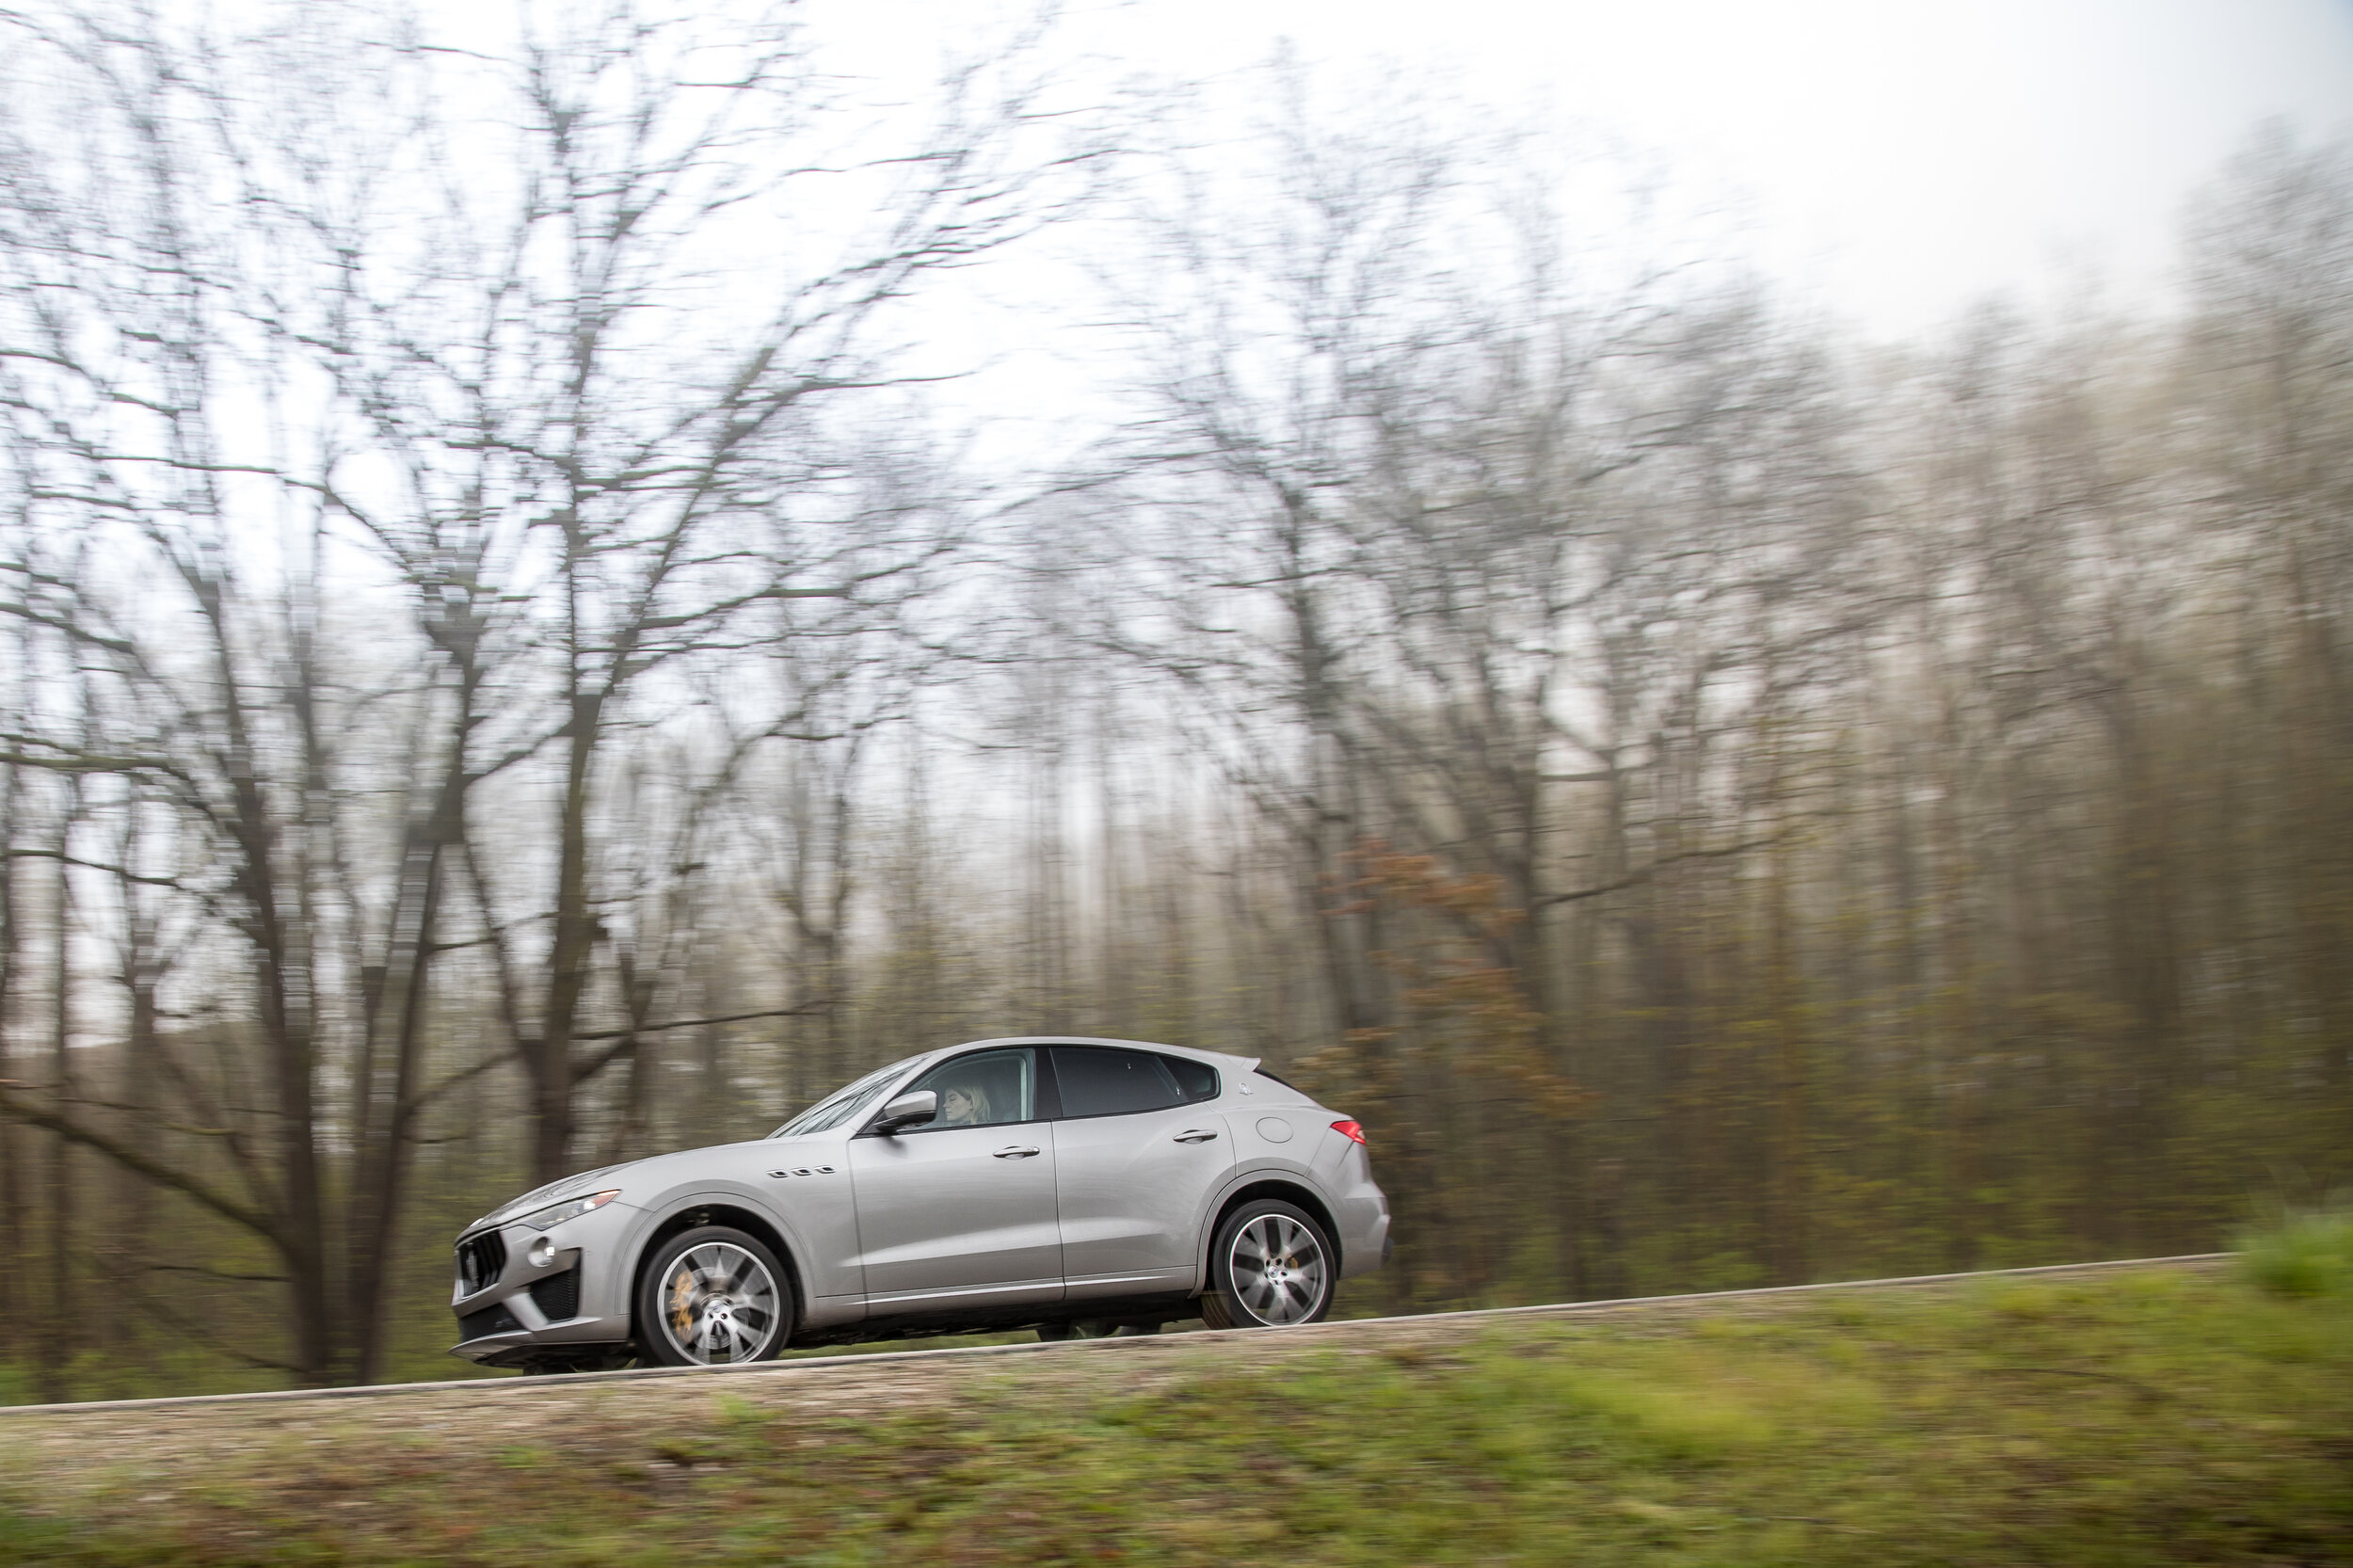 maserati-levante-2019-01-dynamic--exterior--outdoors--profile--silver.jpg